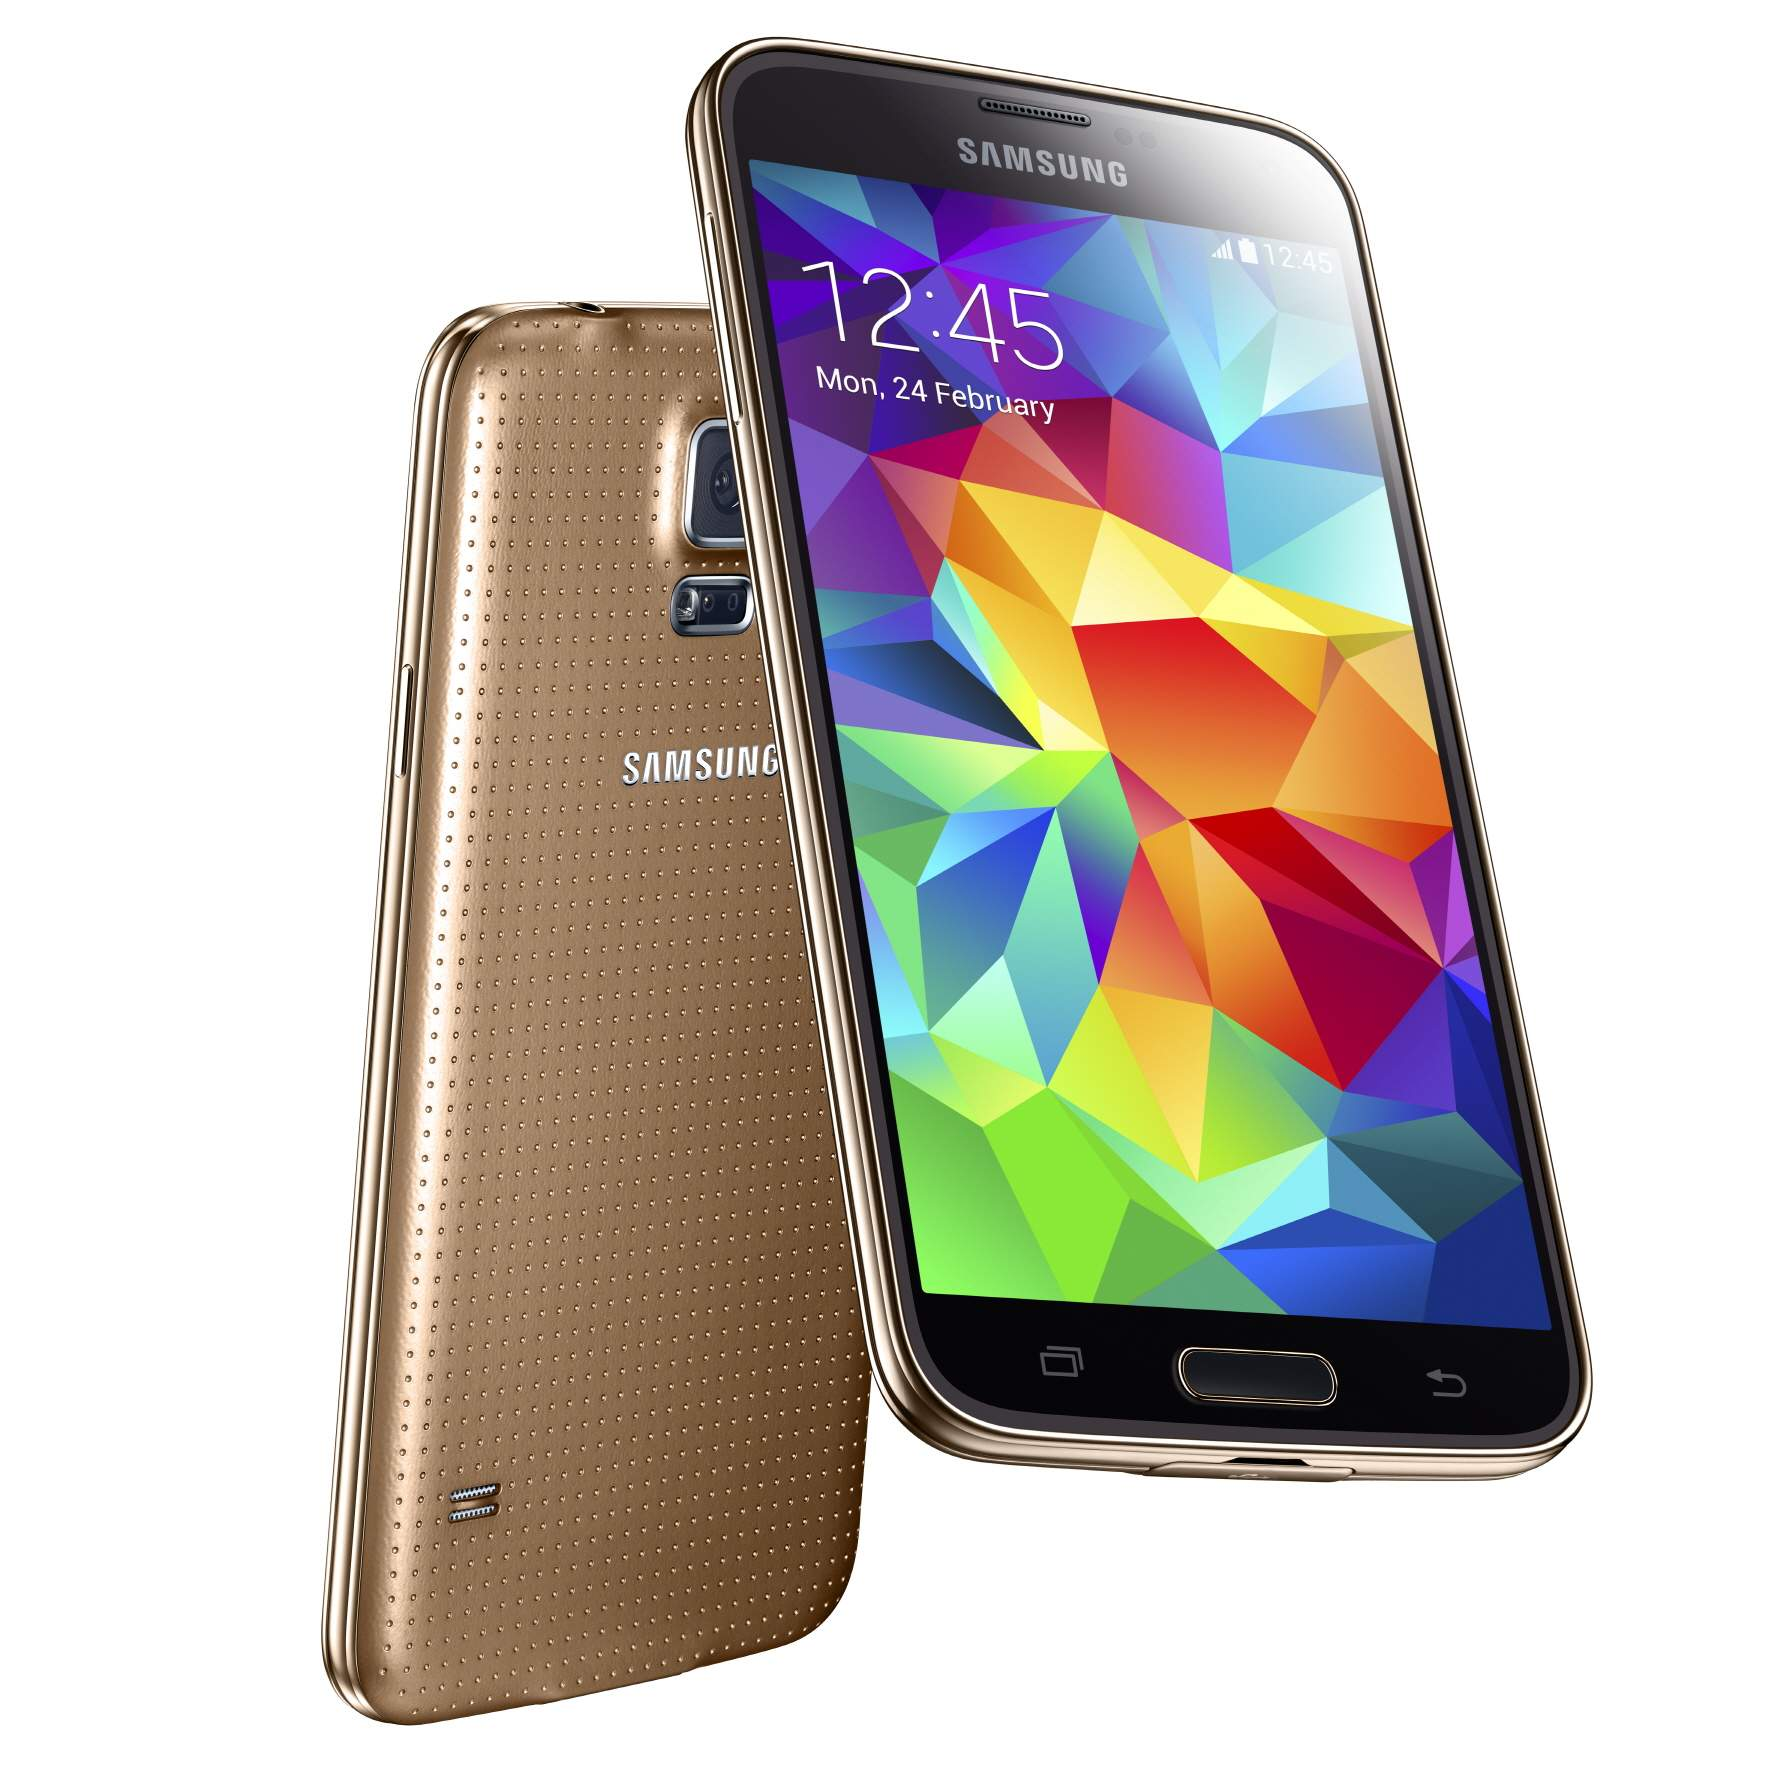 Android Lollipop Membawa Mode Sunyi pada Galaxy S5